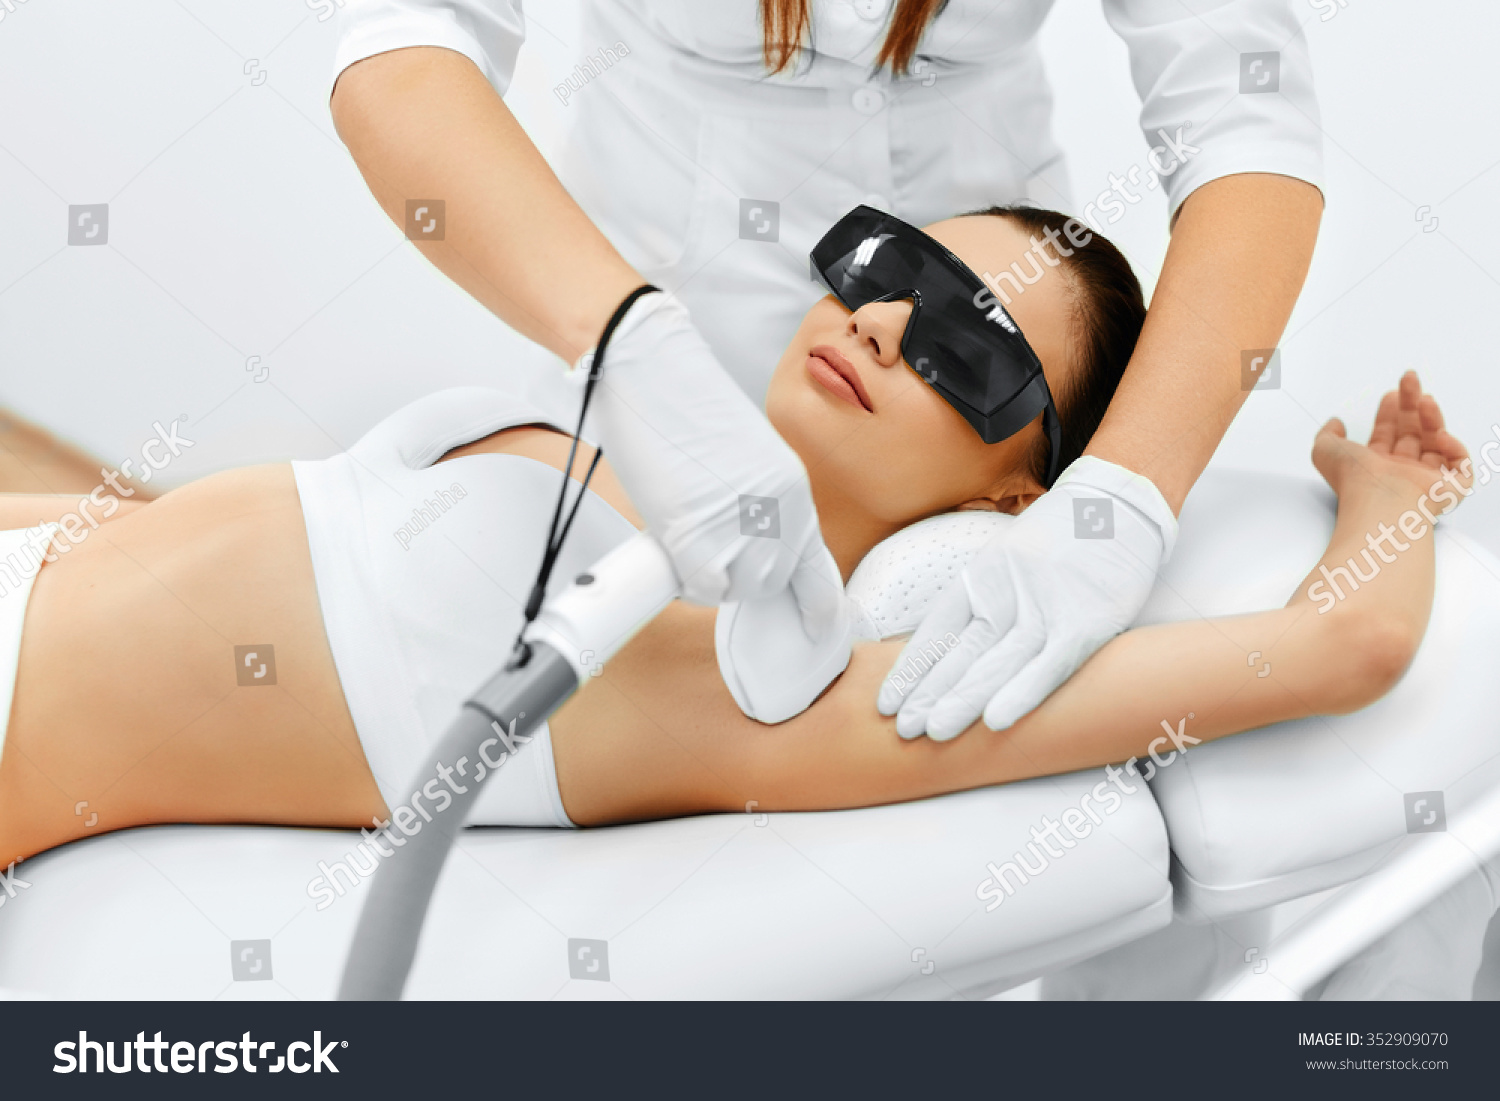 Body Care Underarm Laser Hair Removal Stock Photo ...